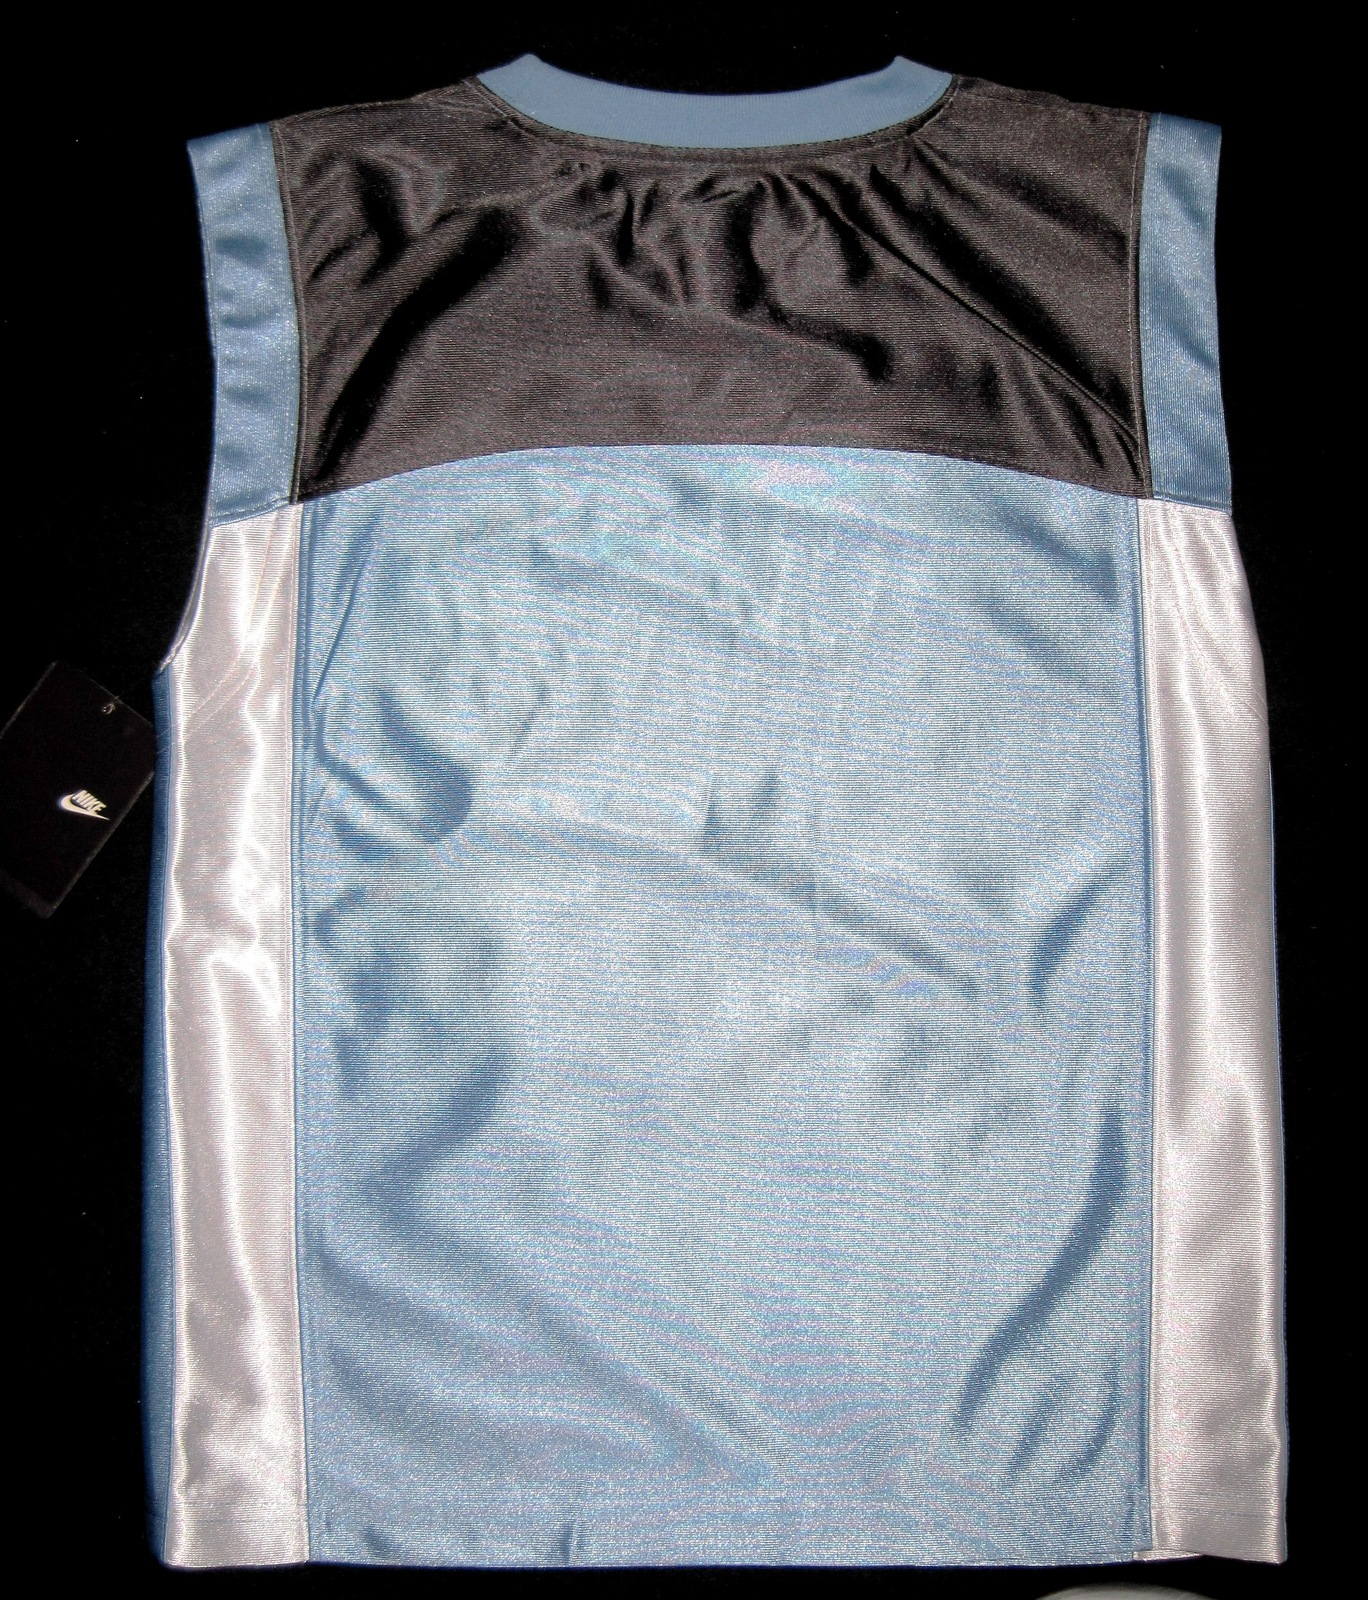 BOYS 7 - Nike - Light Blue-Gray-White BASKETBALL SPORTS JERSEY image 12